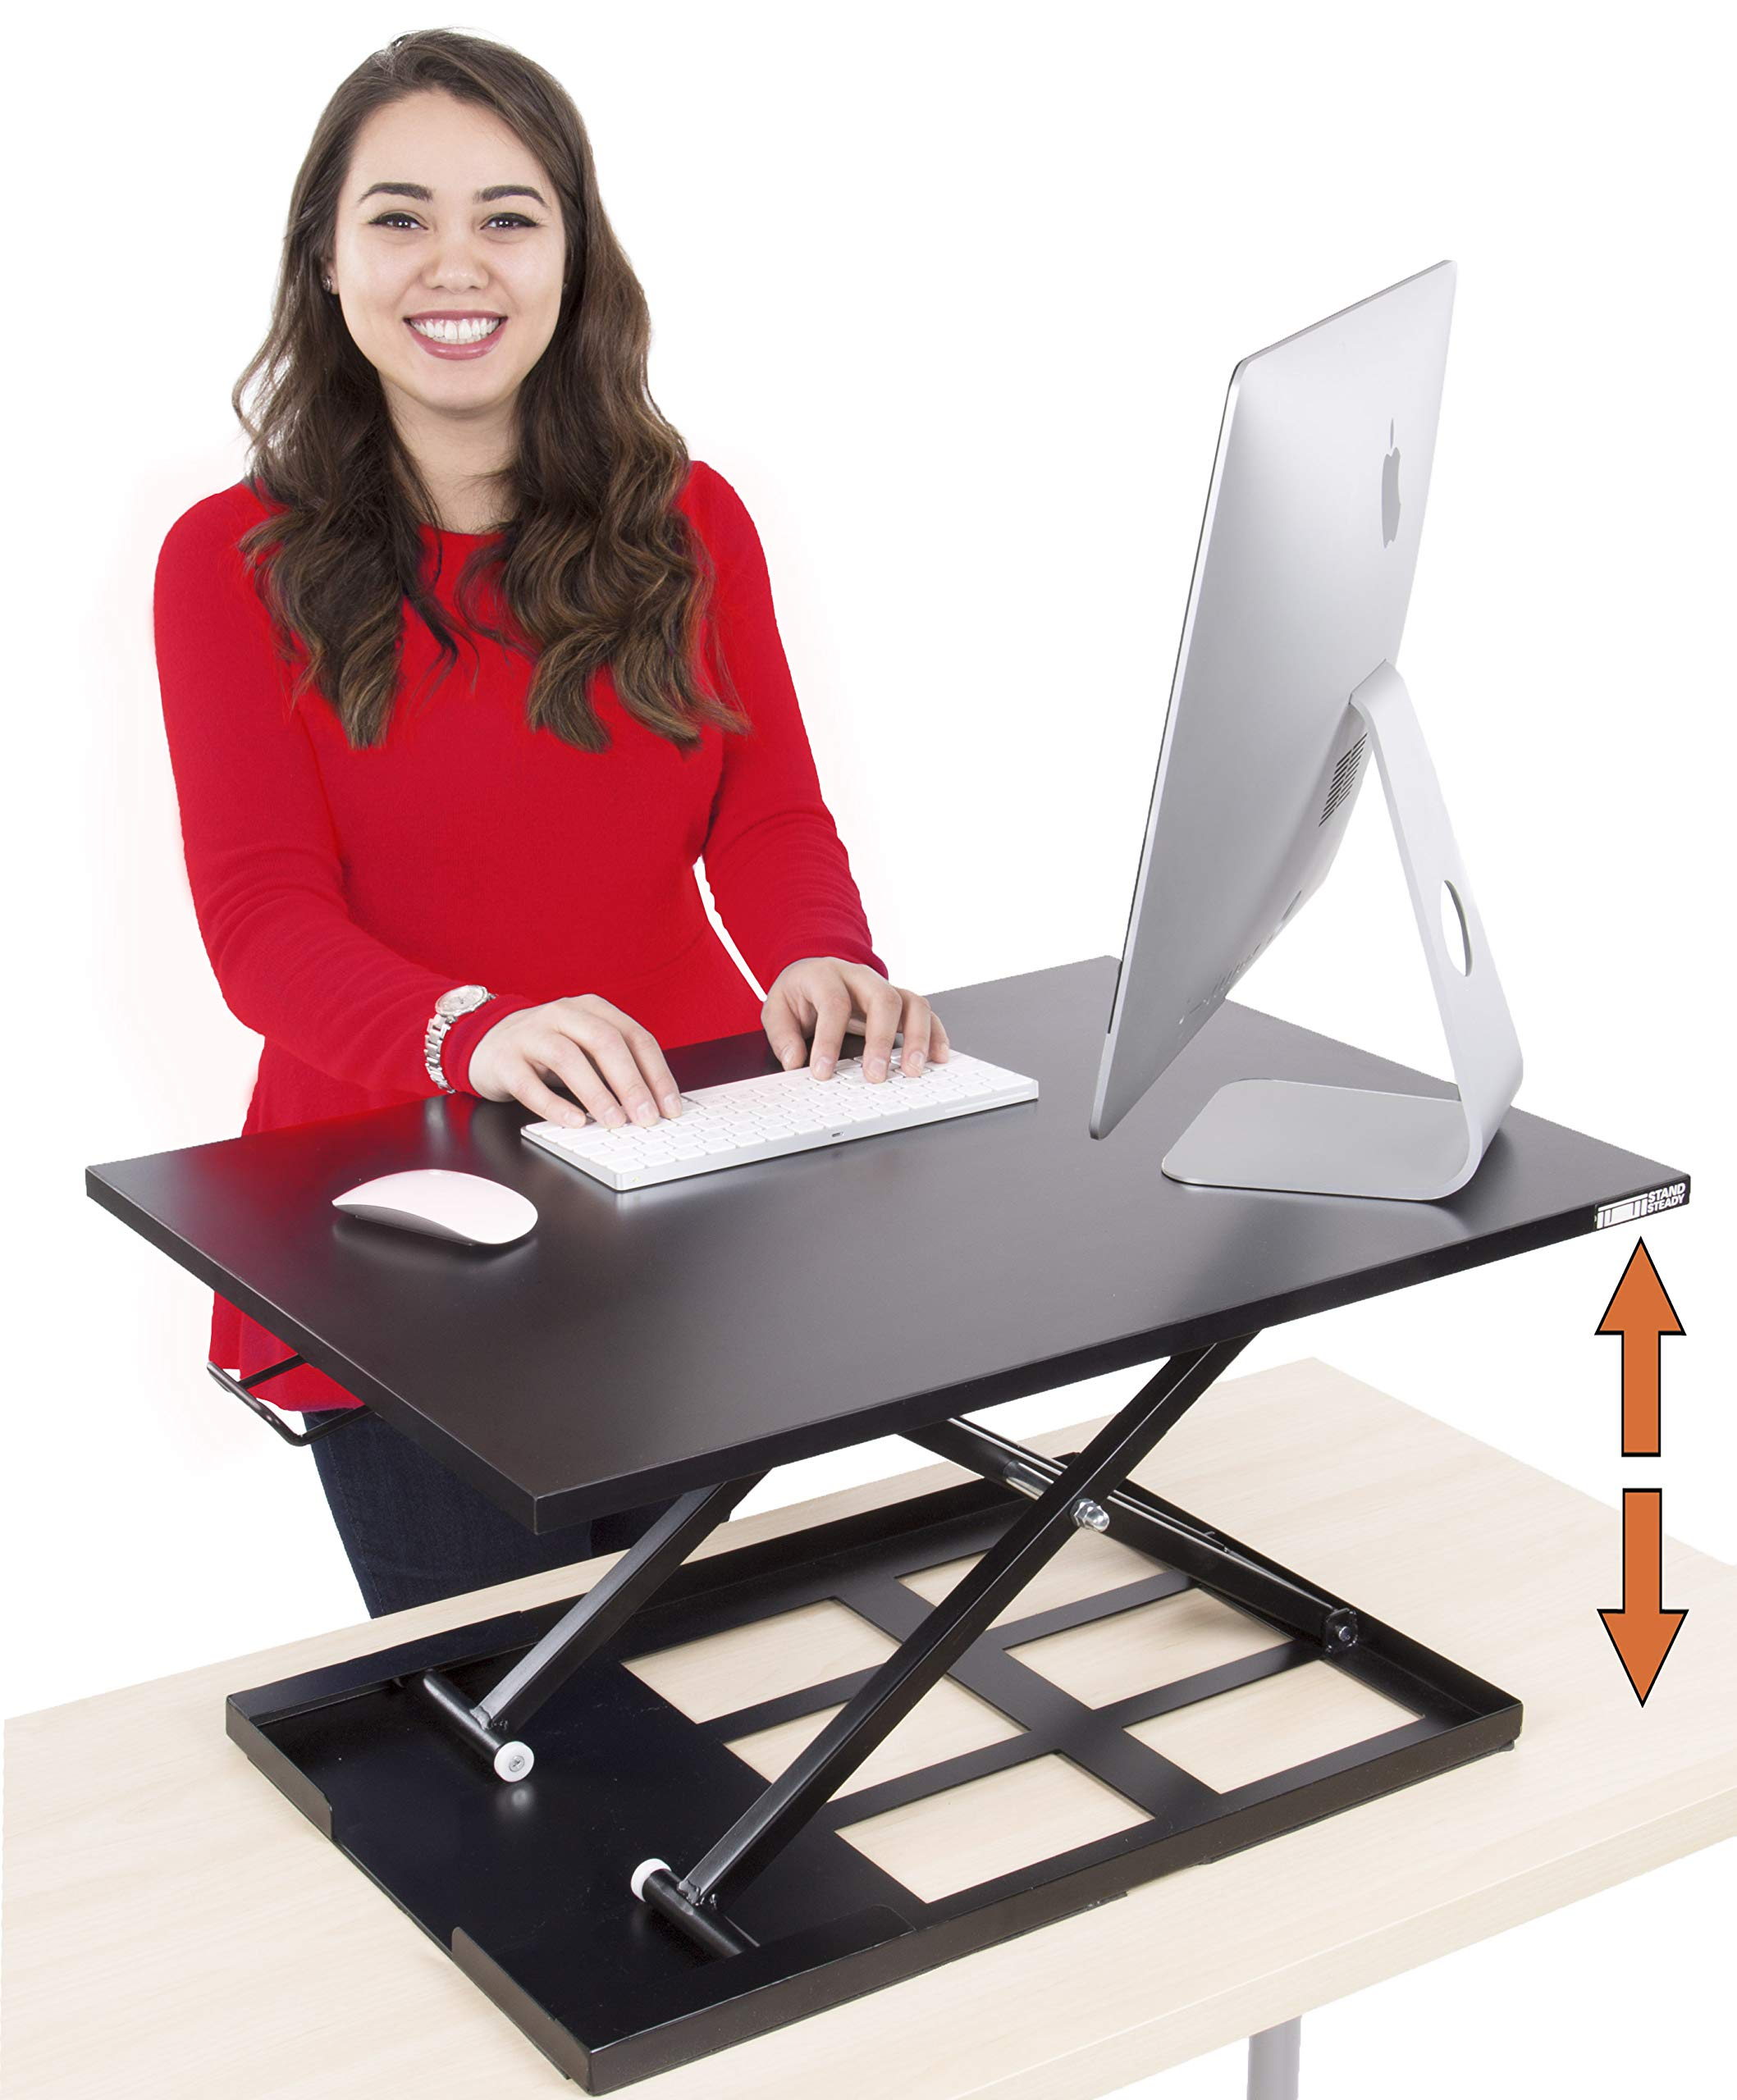 Stand Steady Standing Desk X-Elite Standing Desk | X-Elite Pro Version, Instantly Convert Any Desk Into a Sit/Stand Up Desk, Height-Adjustable, Fully Assembled Desk Converter (Black / 28 Inch) by Stand Steady